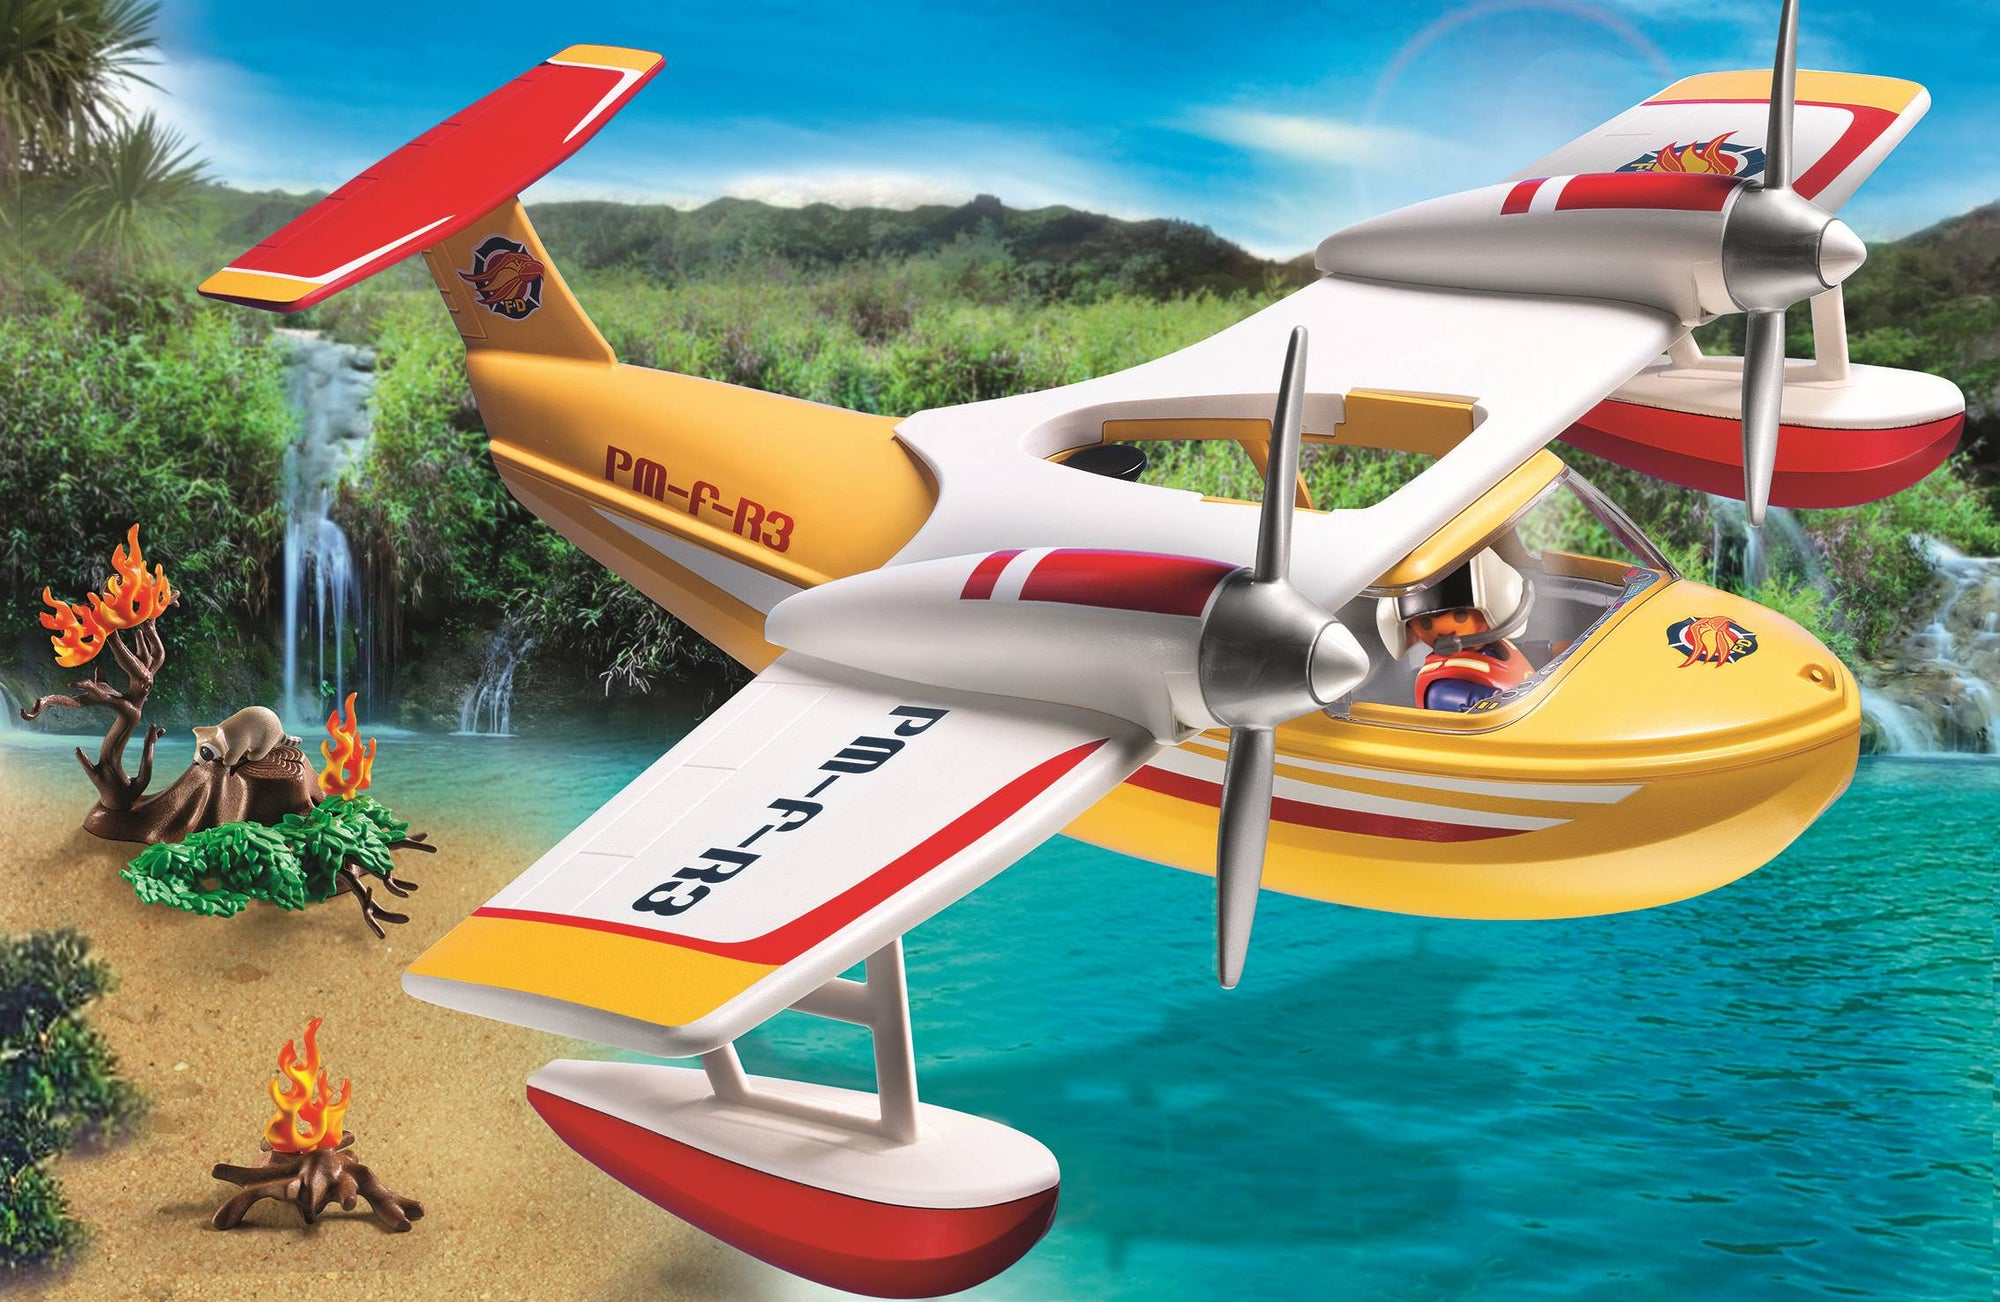 Firefighting Seaplane - Playmobil